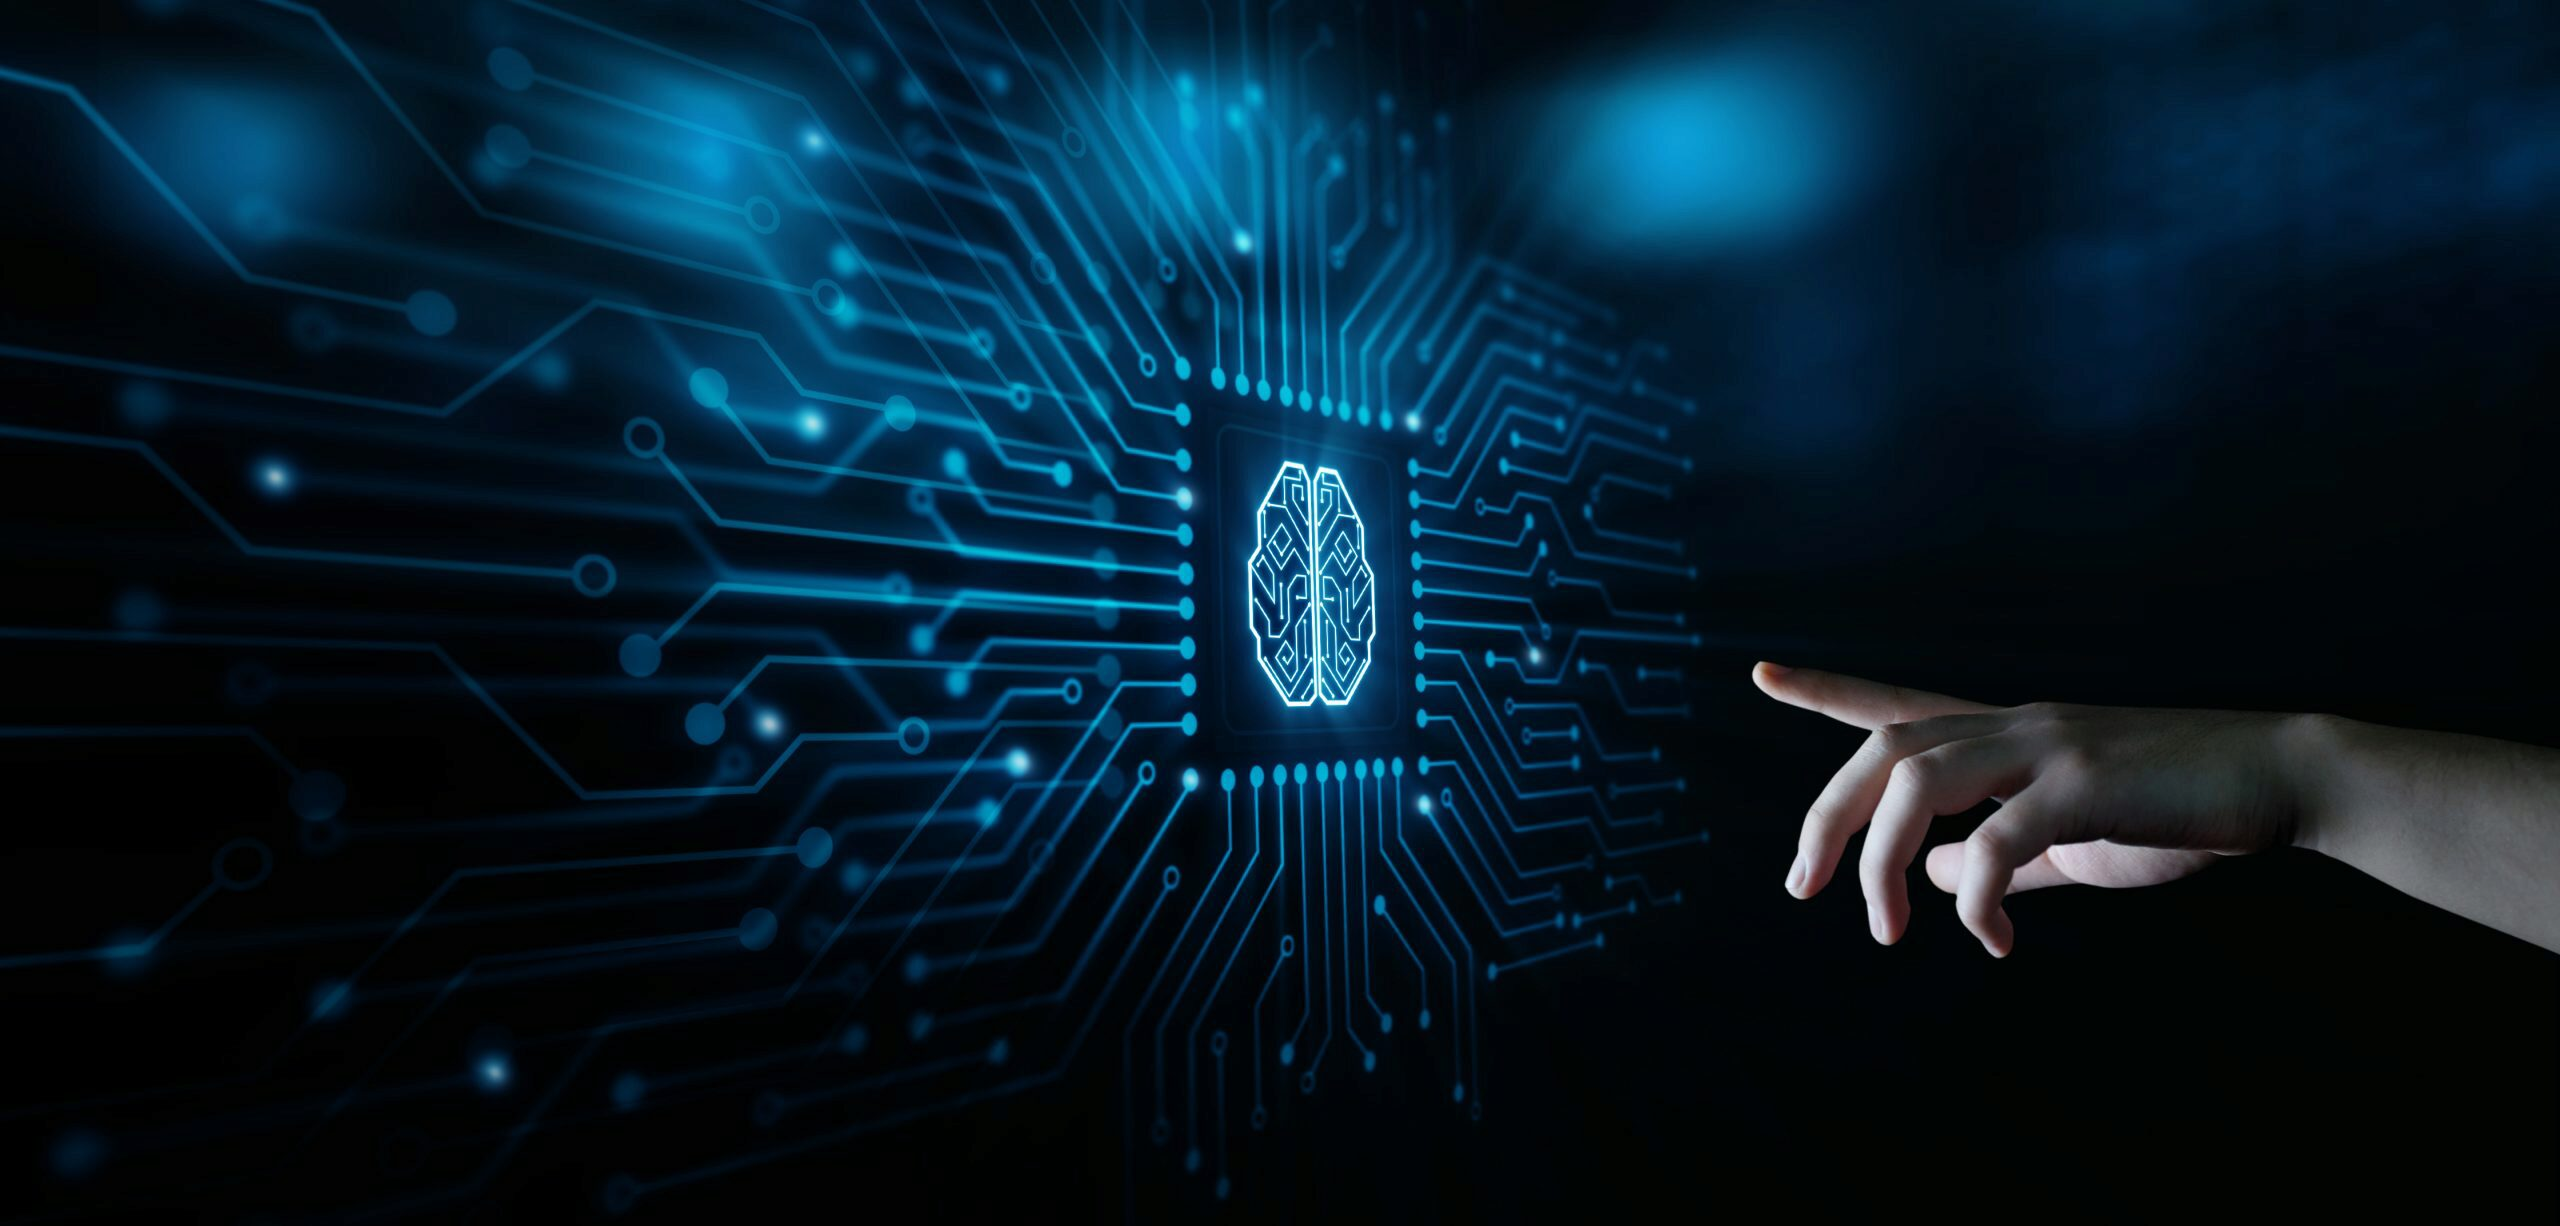 Hand reaching out to AI brain graphic